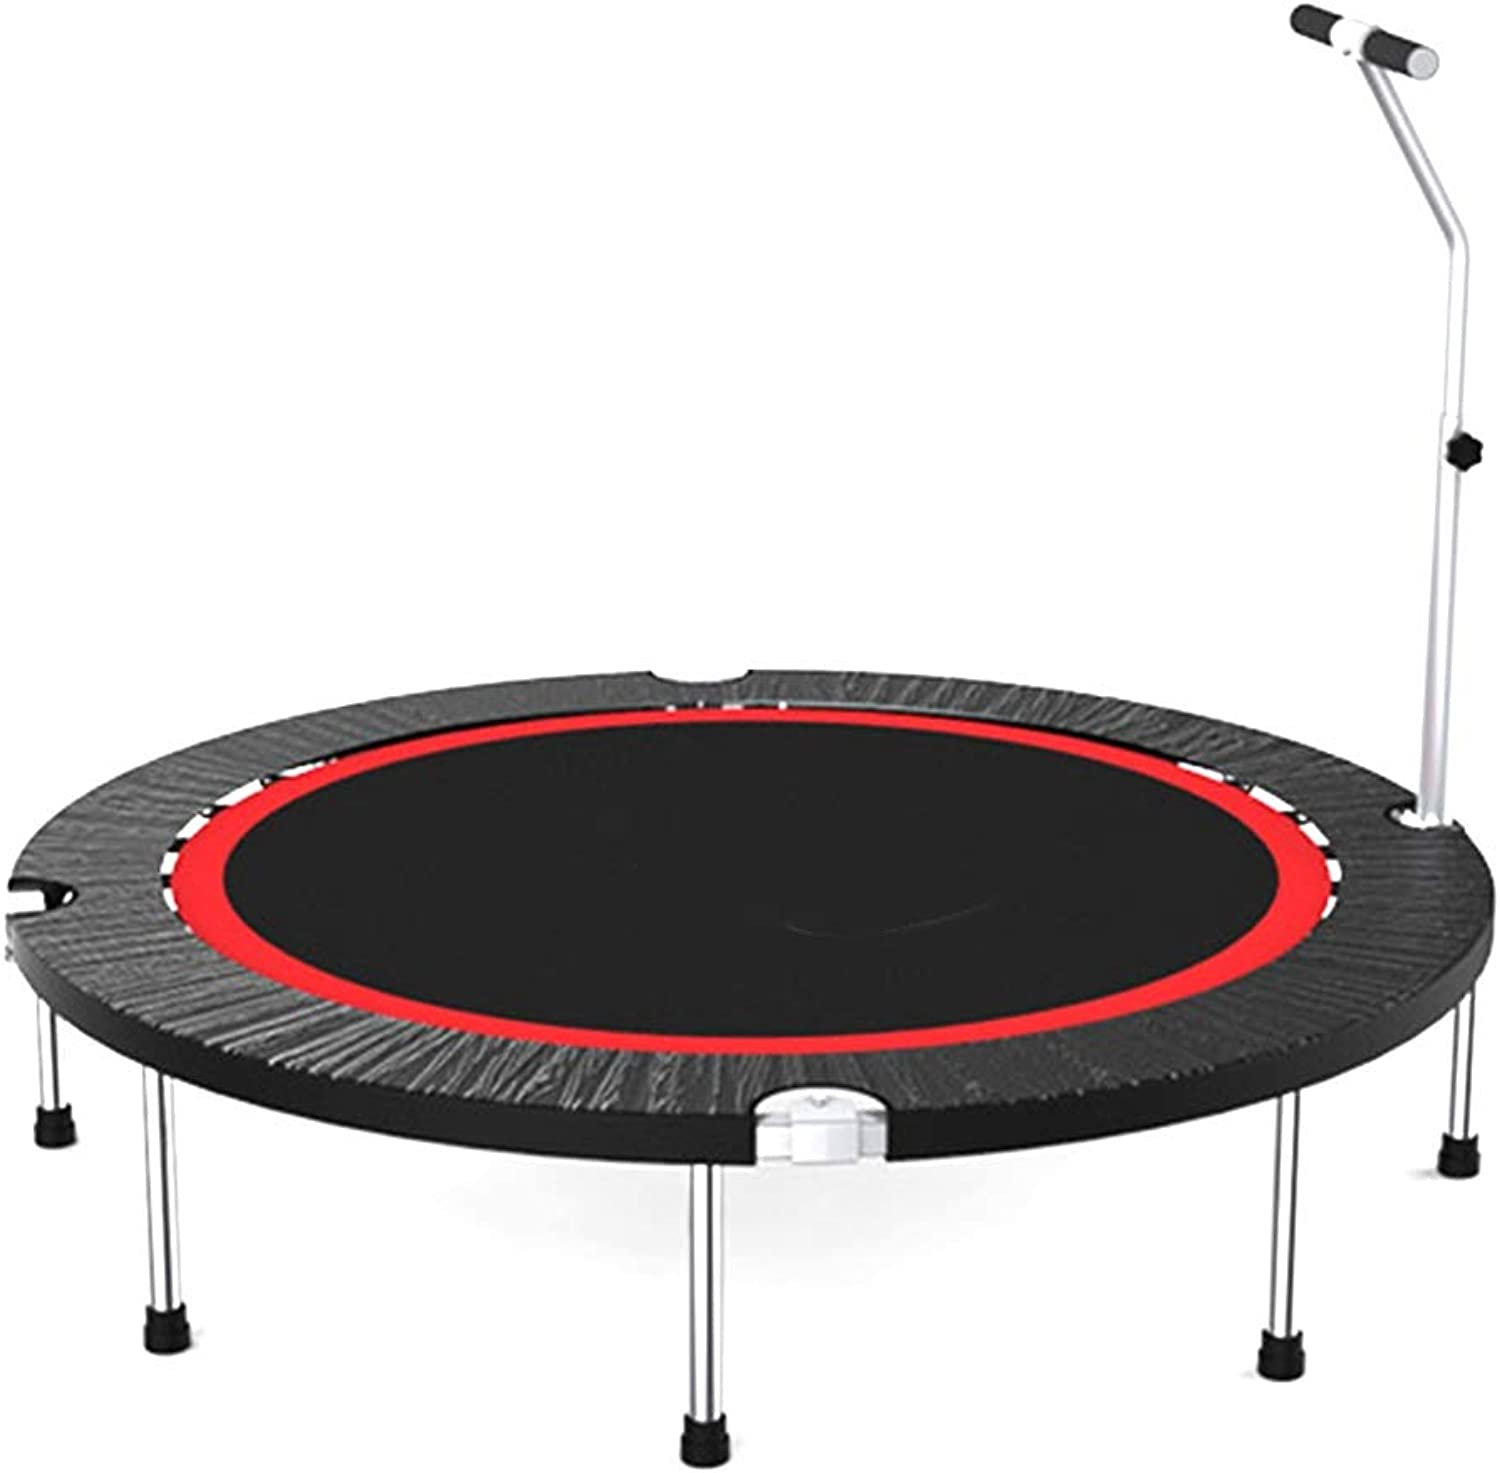 Household Trampoline with Handrail  Mini Kids Trampolines for Indoor Garden Workout Cardio, Support 18 inch 50 inch (Size   48 inch)